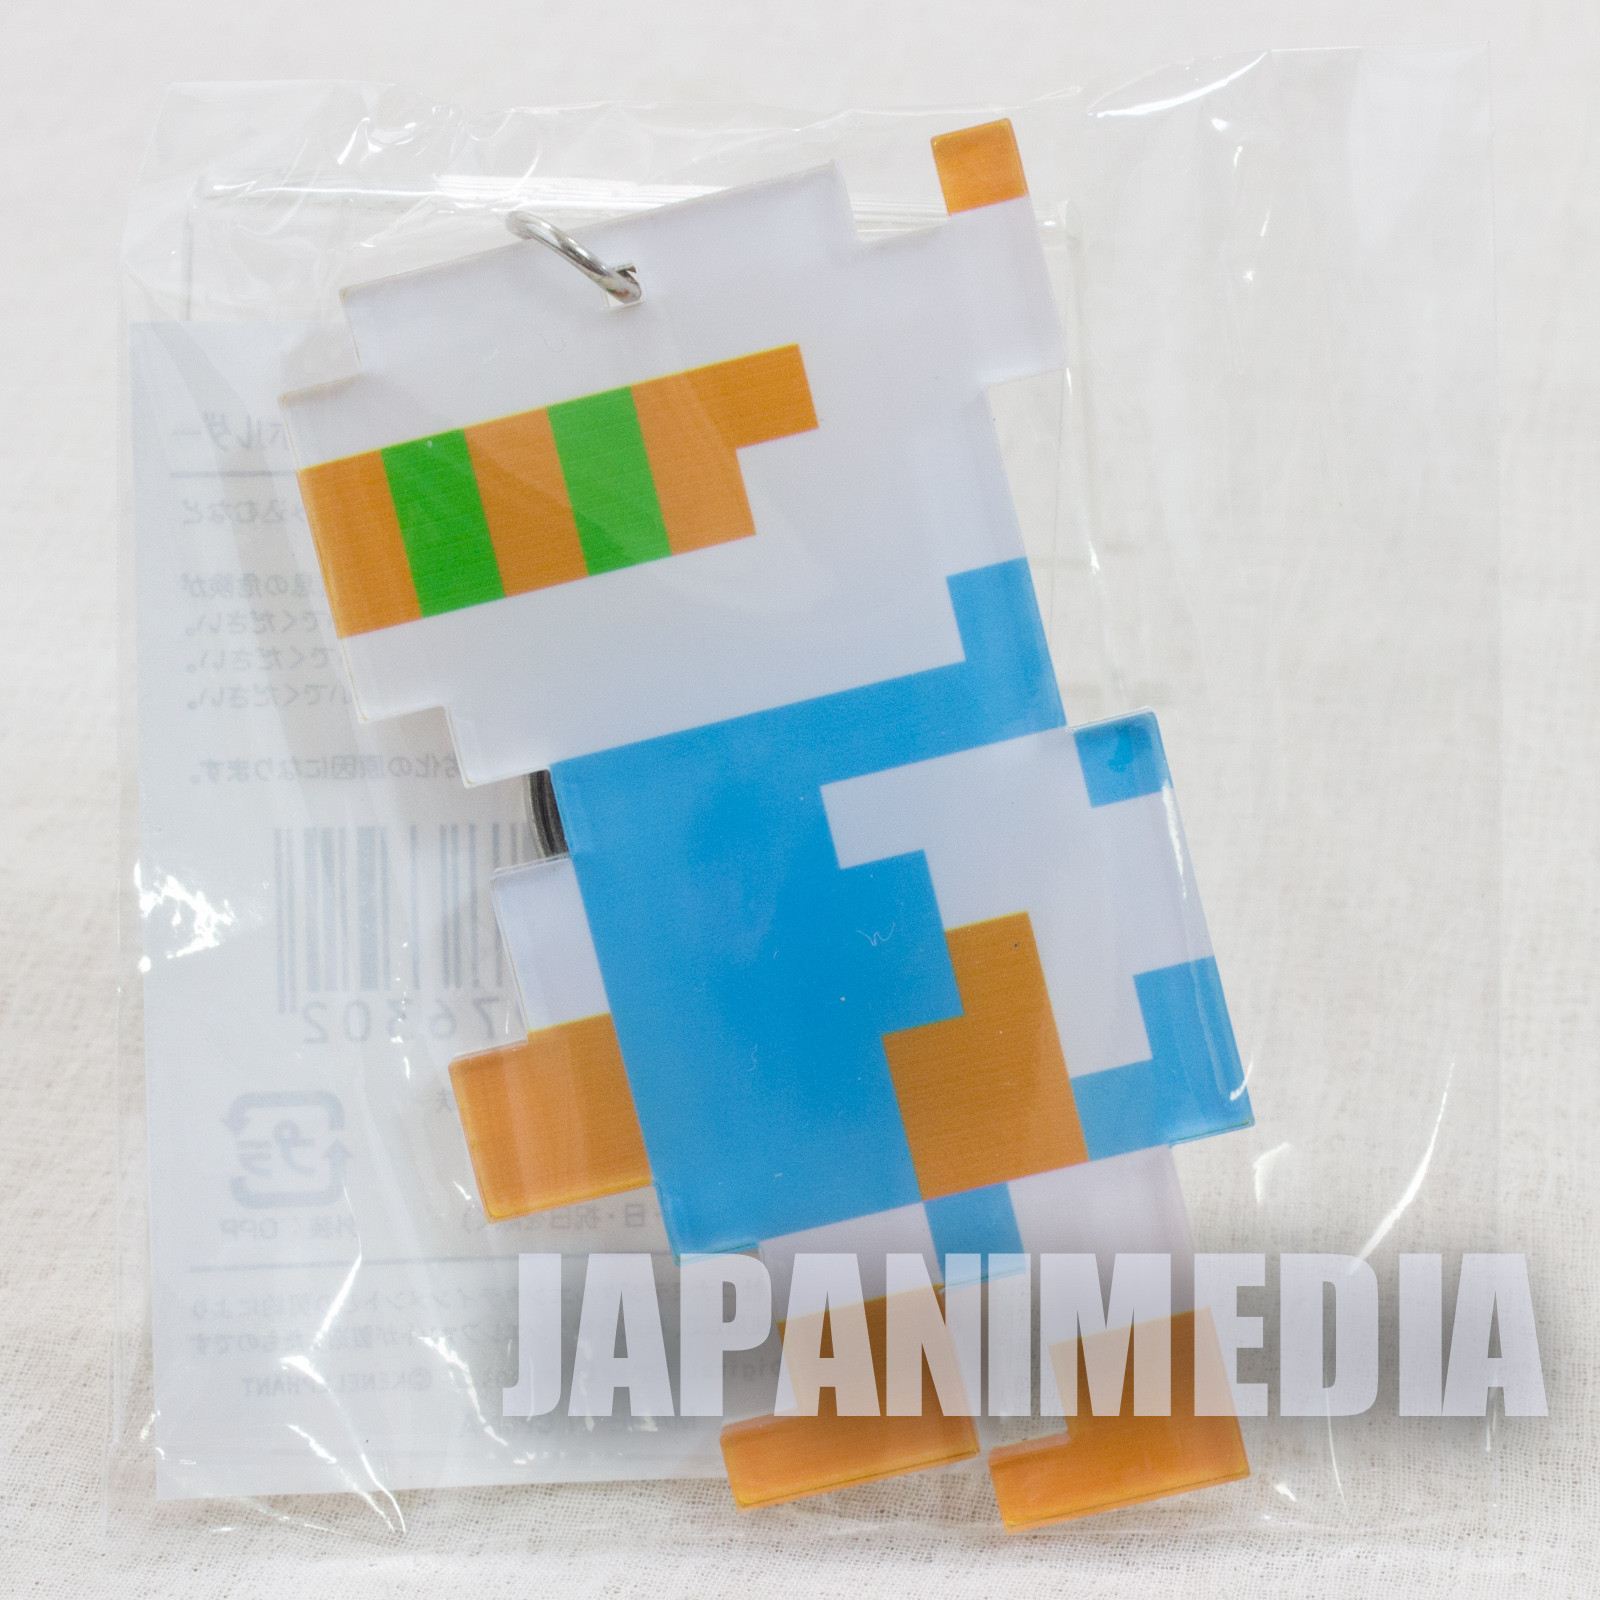 Bomberman Big size Acrylic Mascot Keychain KONAMI JAPAN GAME FAMICOM NES